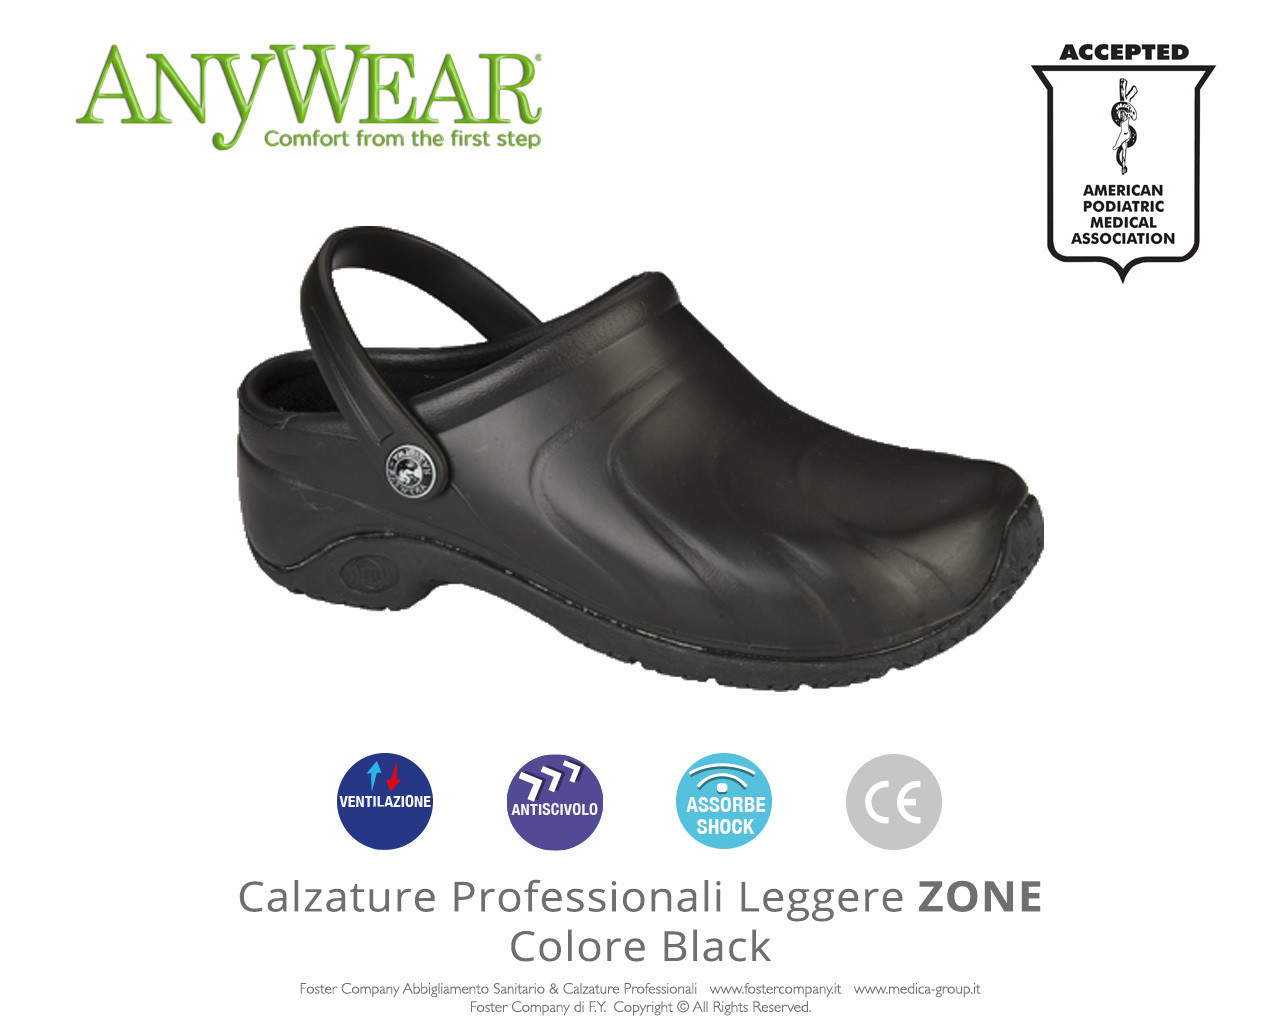 Calzature Professionali Anywear ZONE Colore Black